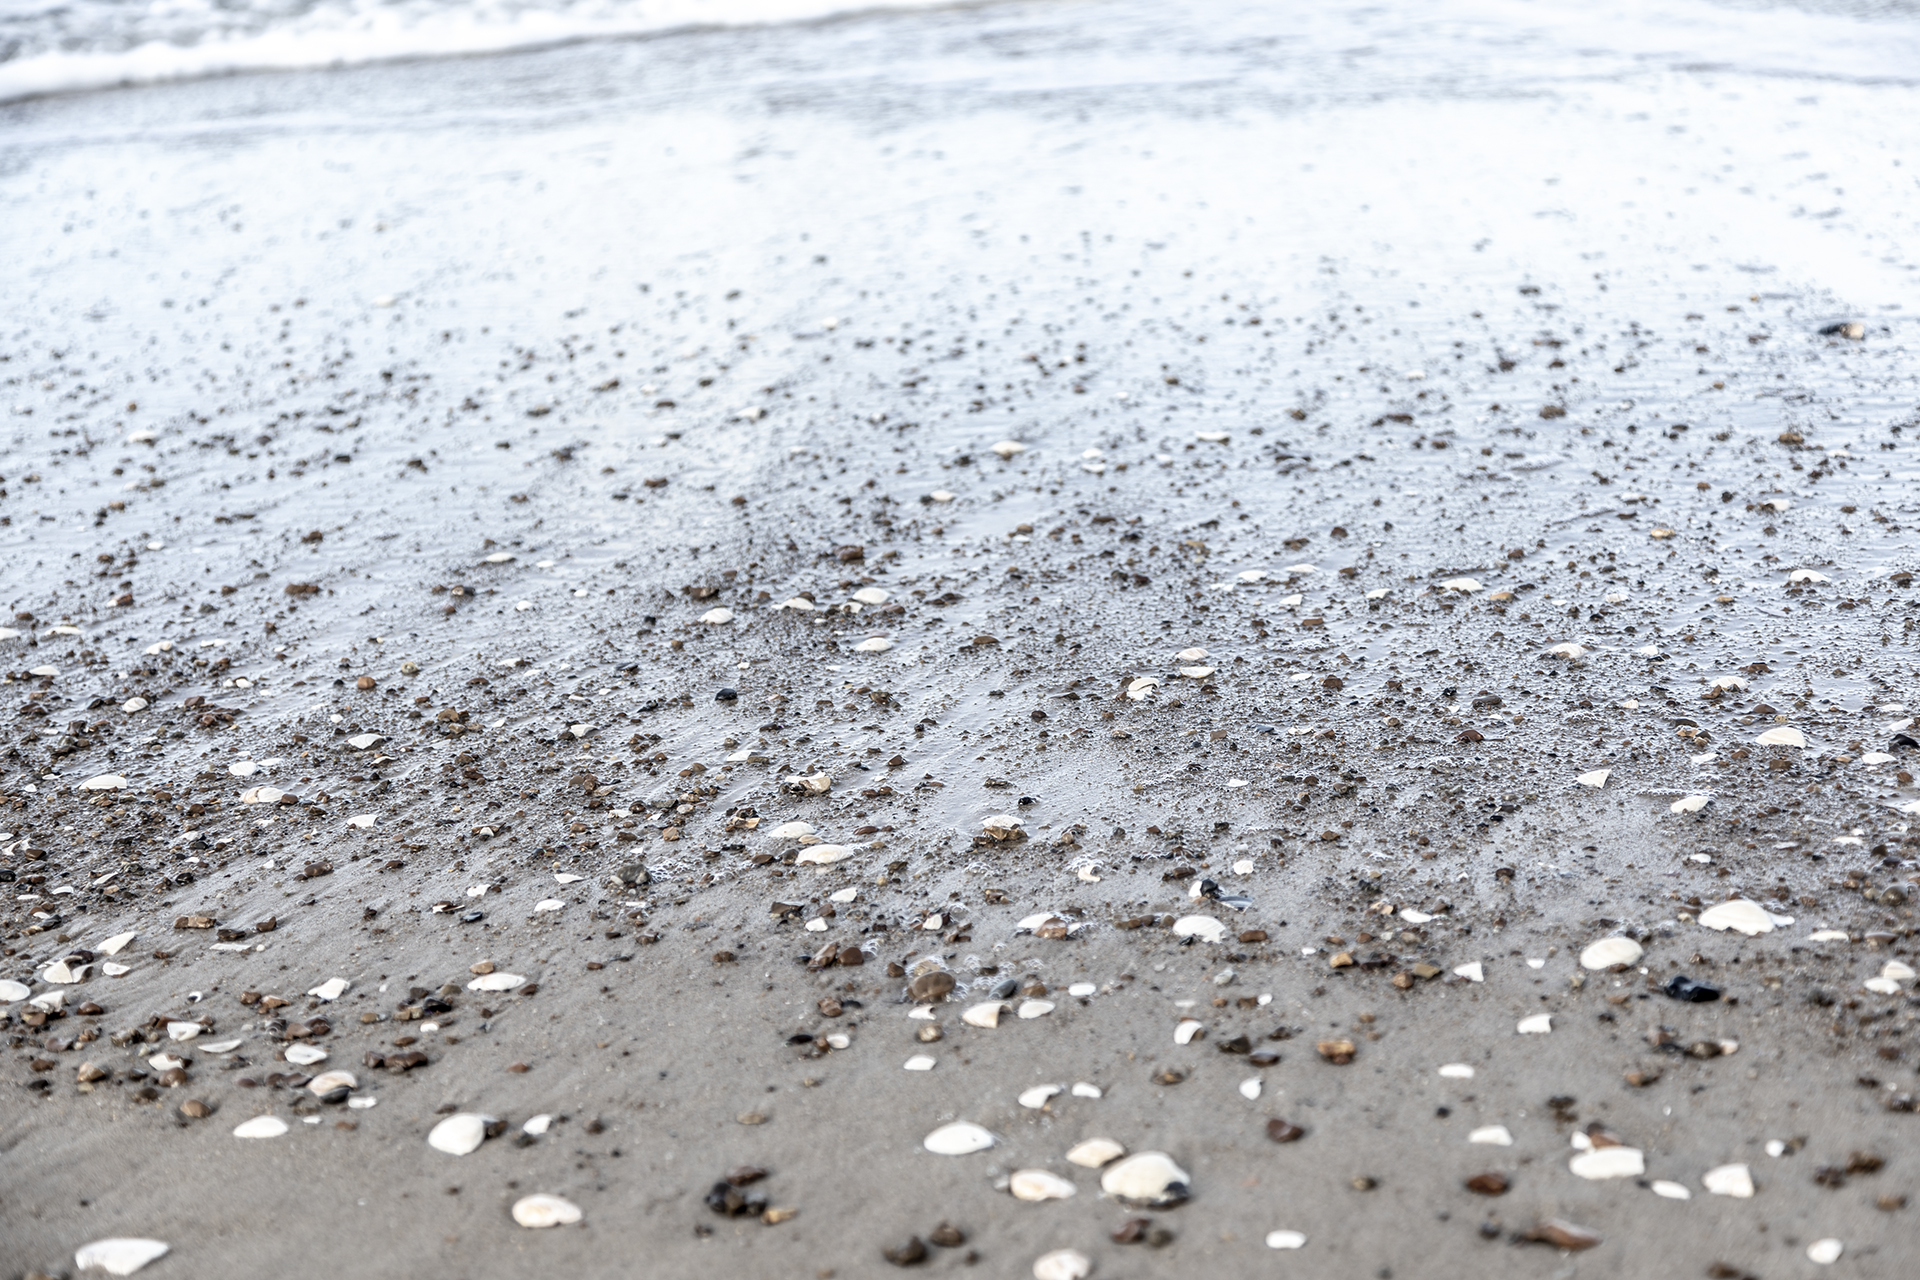 wild beachcombers, marine mollusk shells and more | denmark